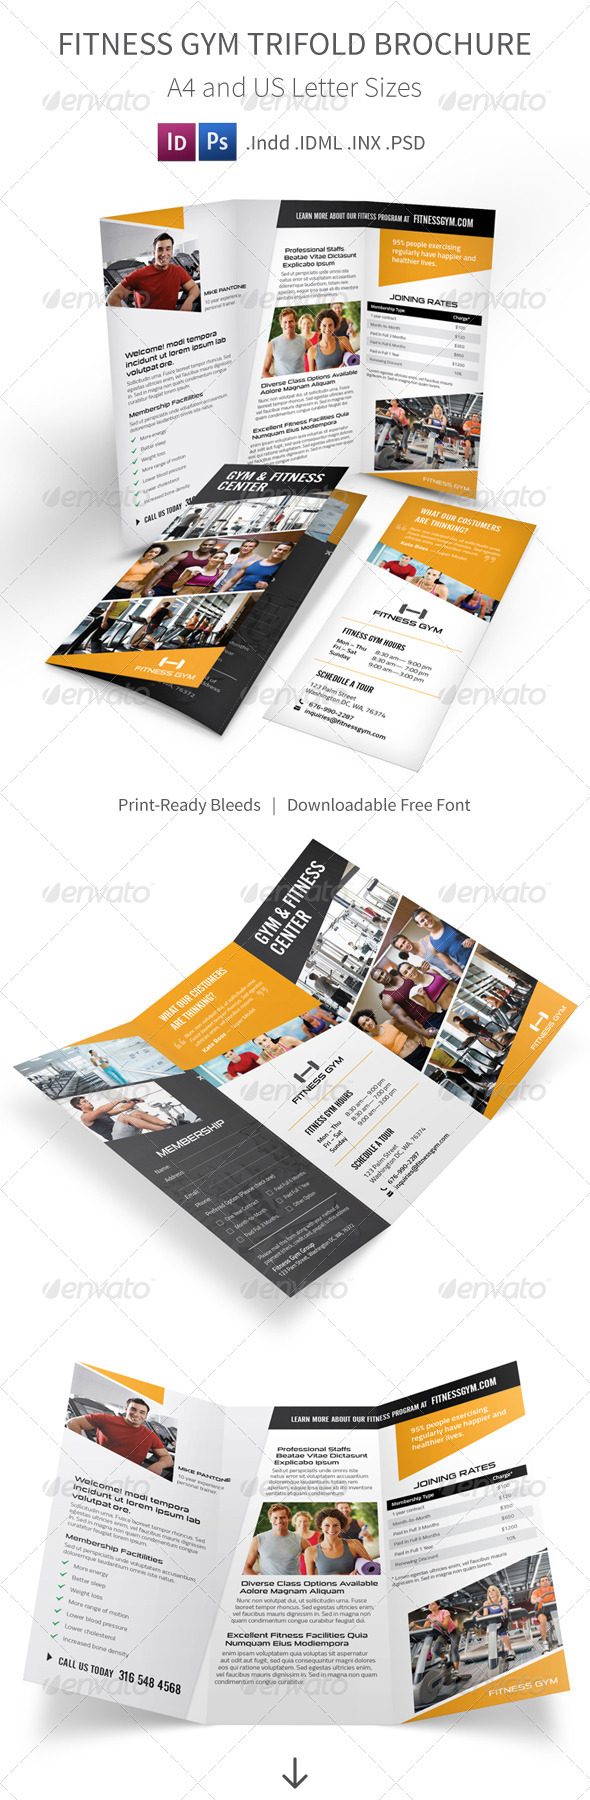 health coach brochure templates - fitness gym trifold brochure informational download